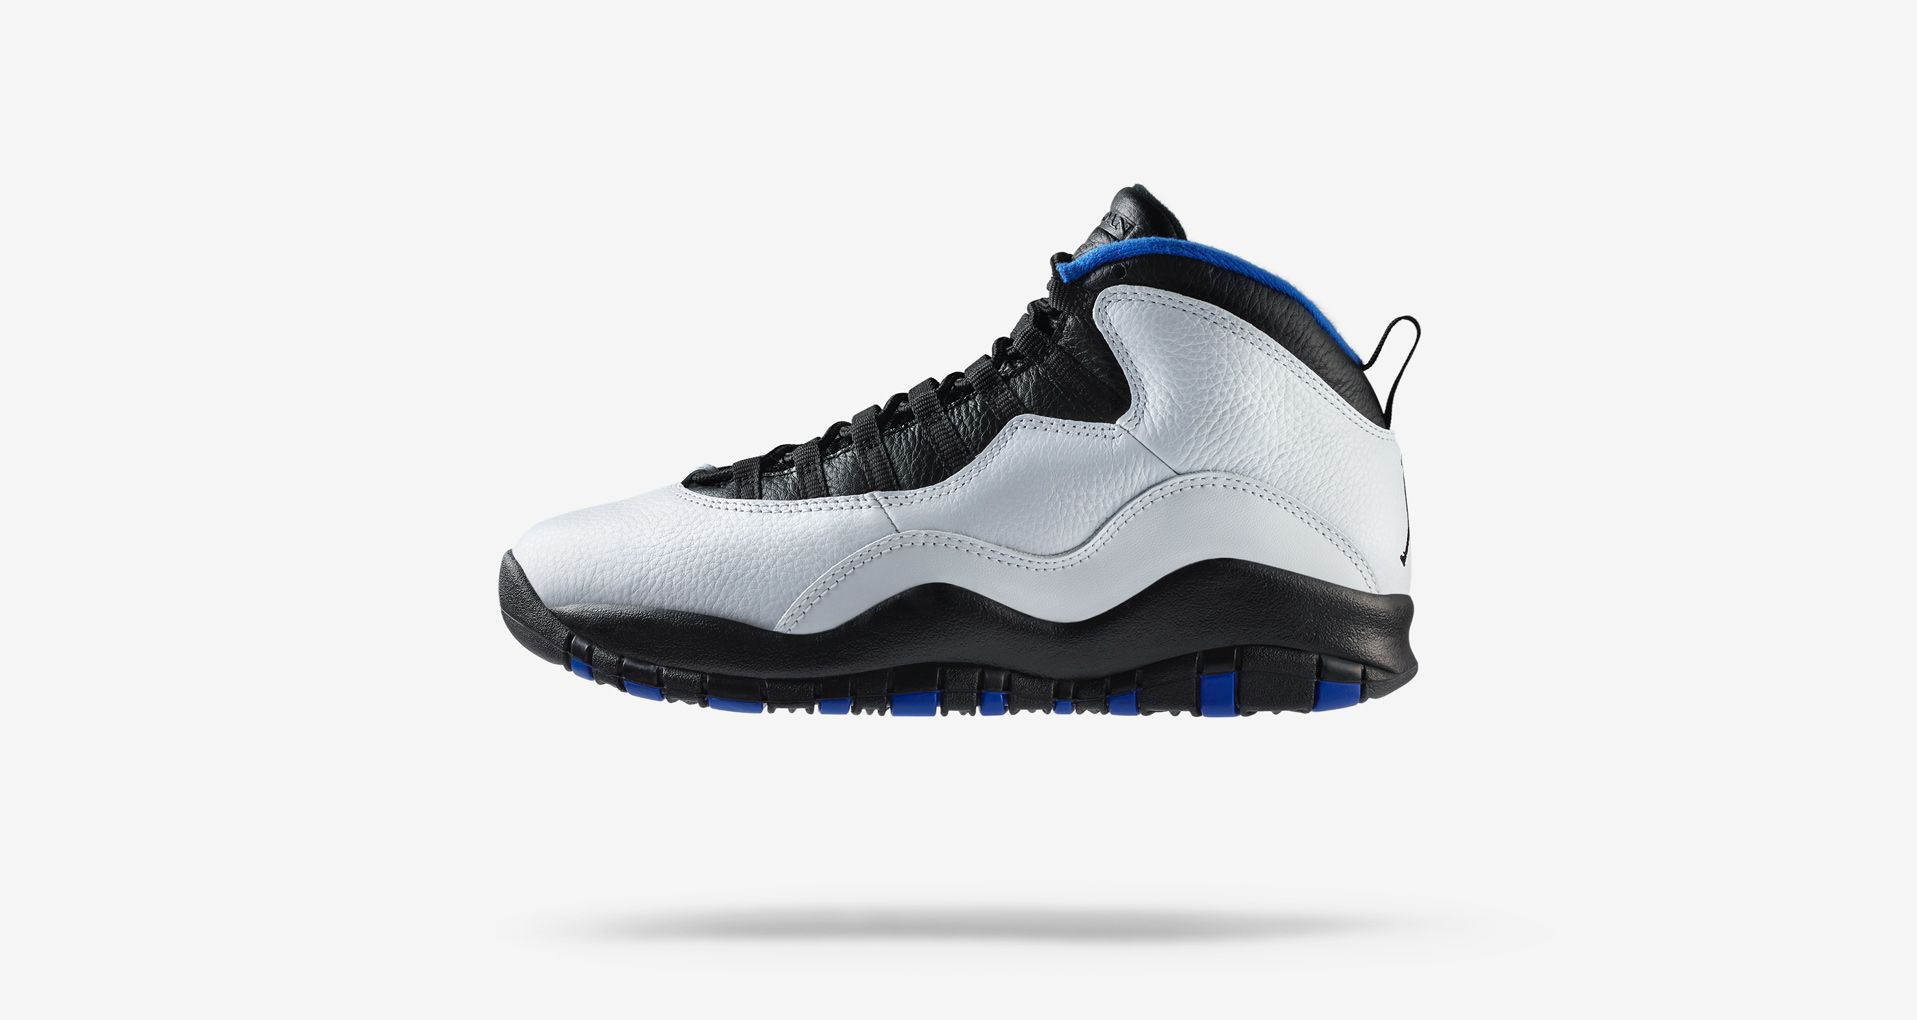 nike-air-jordan-10-retro-city-series-orlando-2018-310805-108-release-20181201